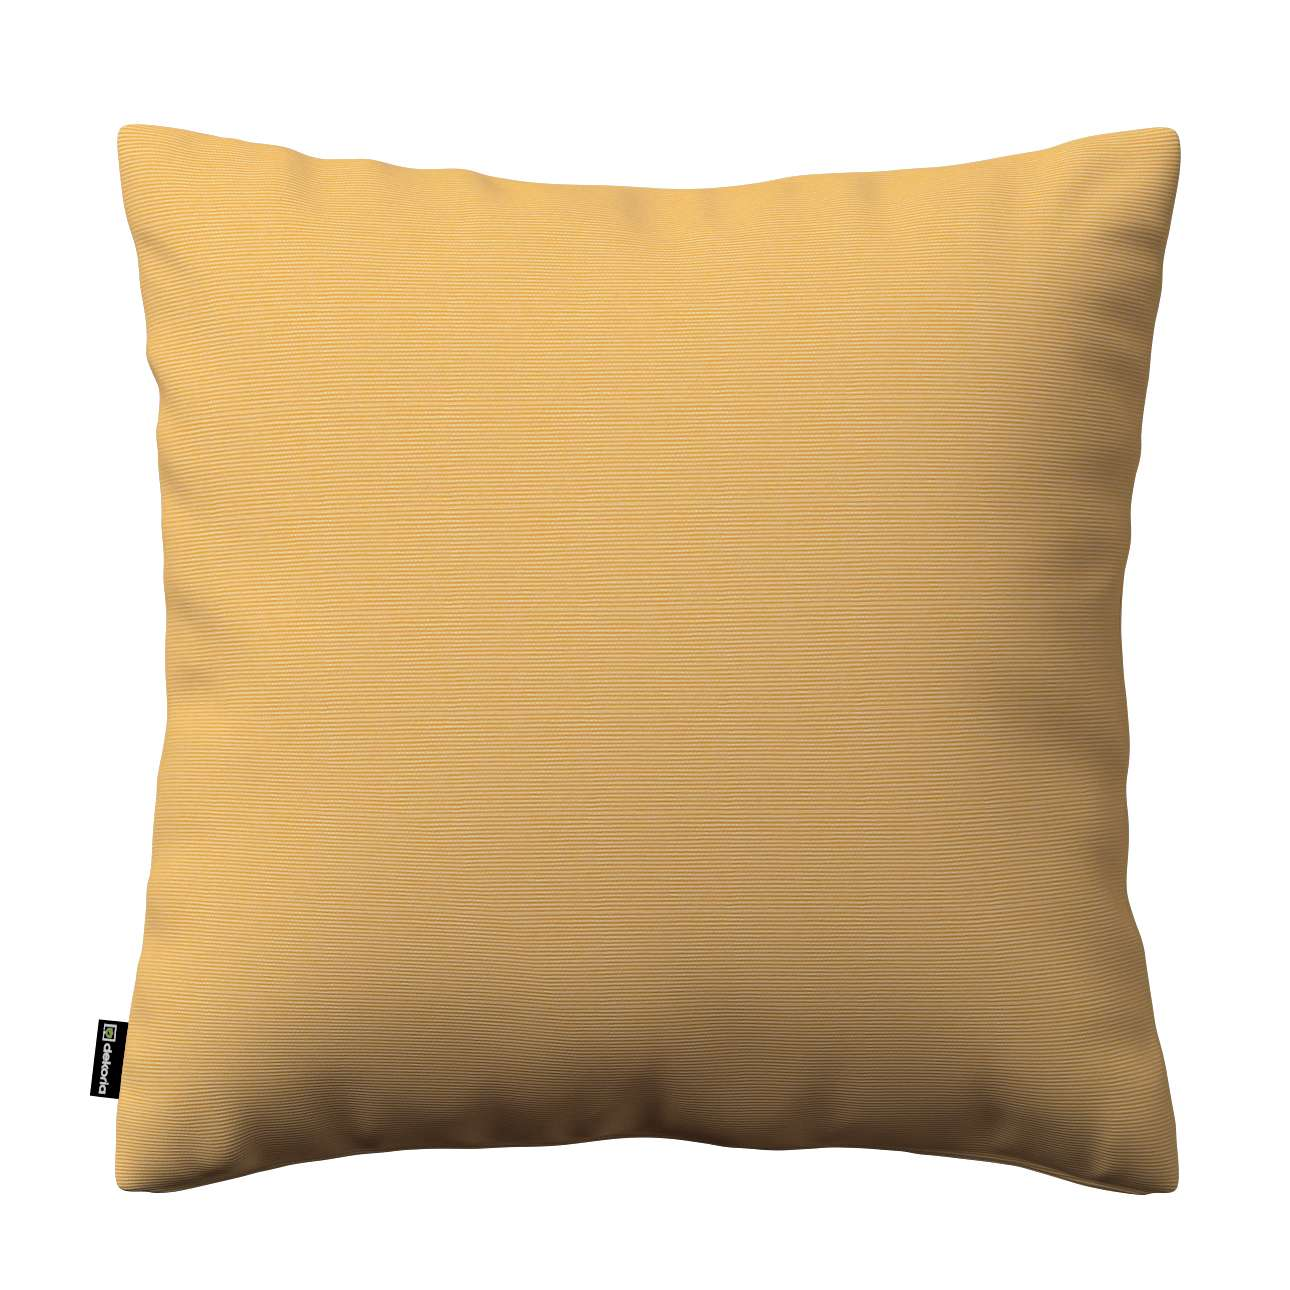 Kinga cushion cover in collection Jupiter, fabric: 127-46